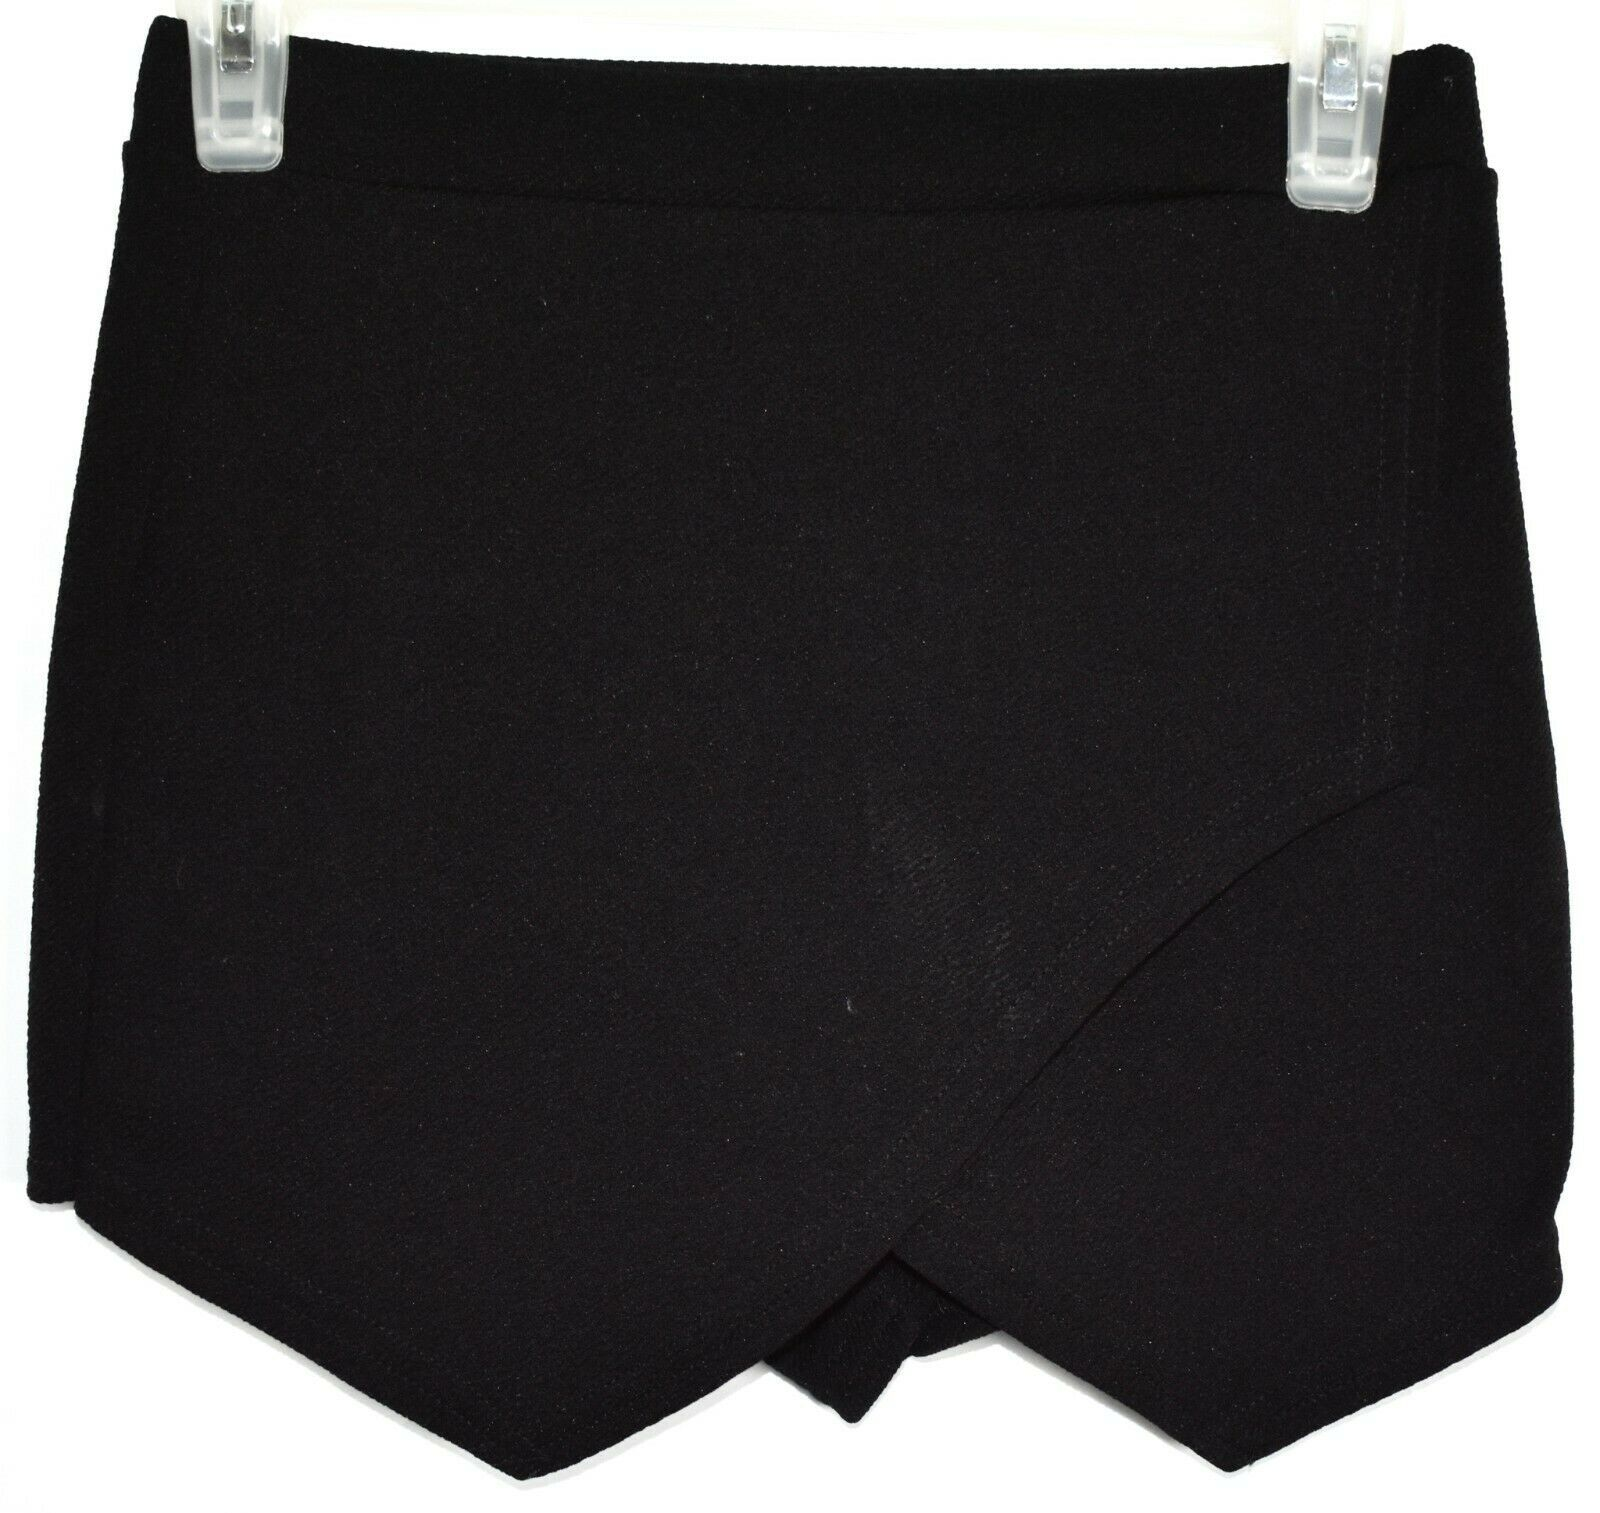 Boohoo Black Asymmetrical Envelope Textured Knit Skort Size US 4 | UK 8